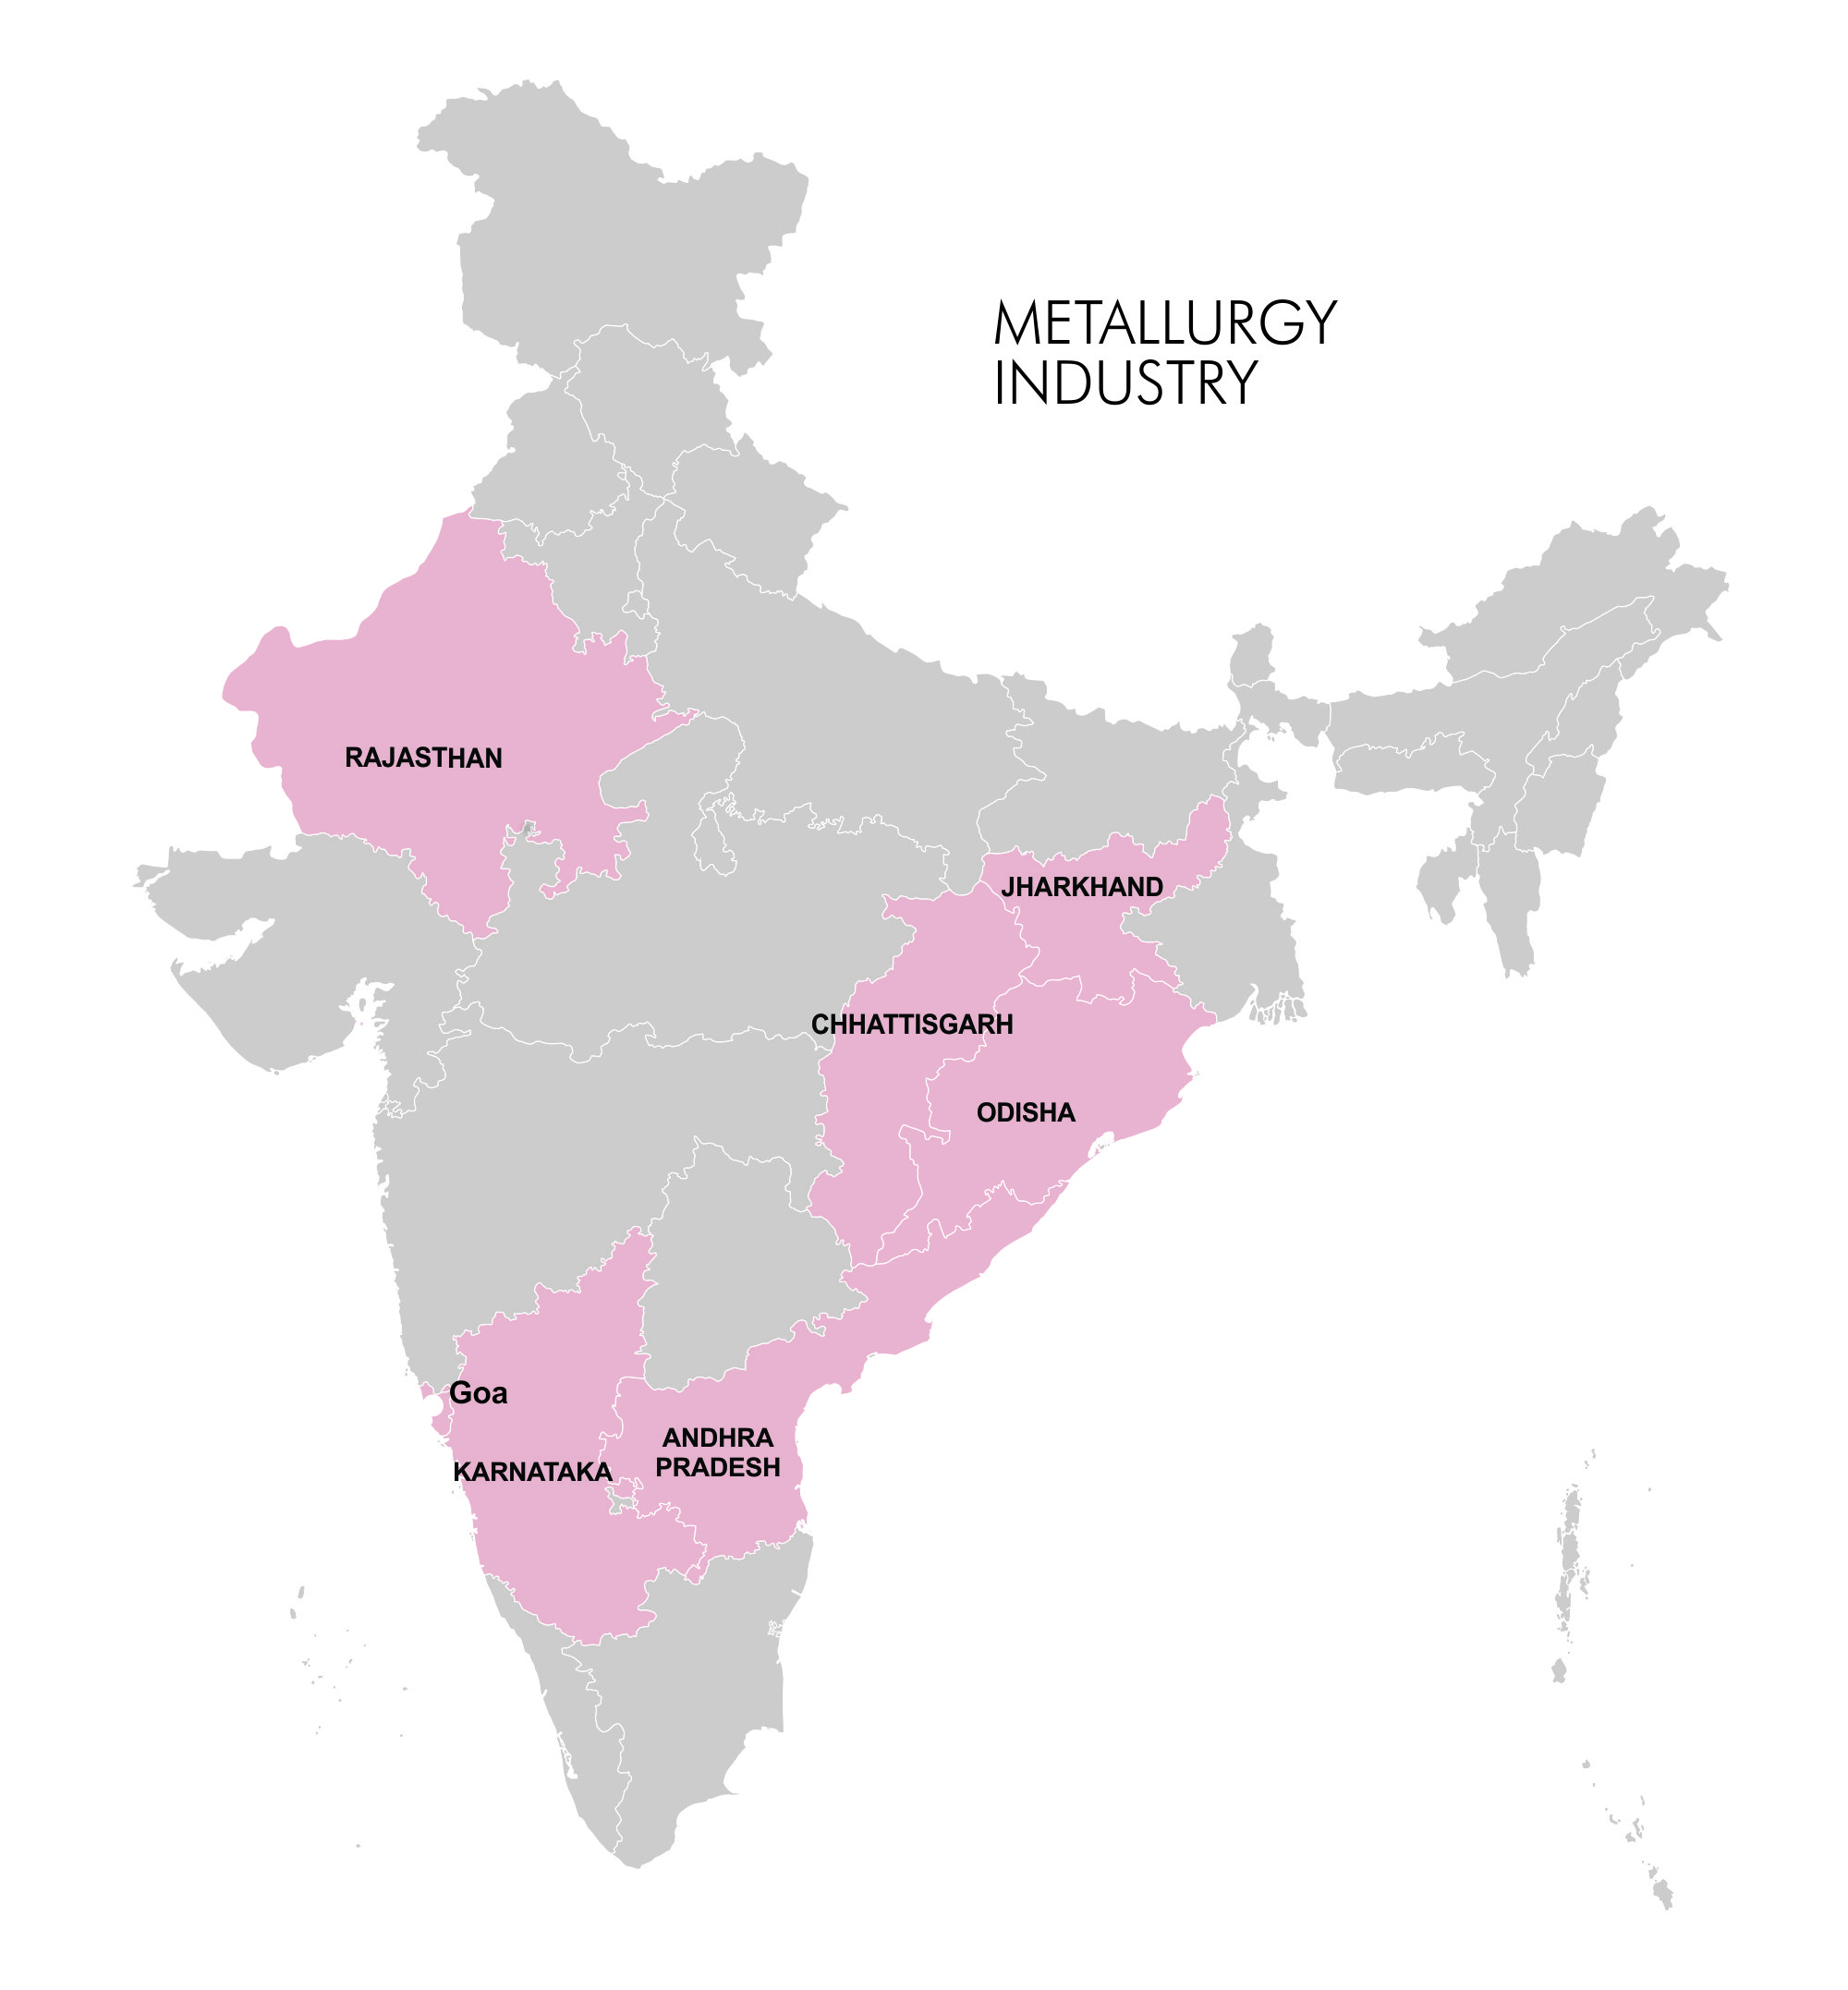 Map- Industry Clusters - Metallurgy & Mining